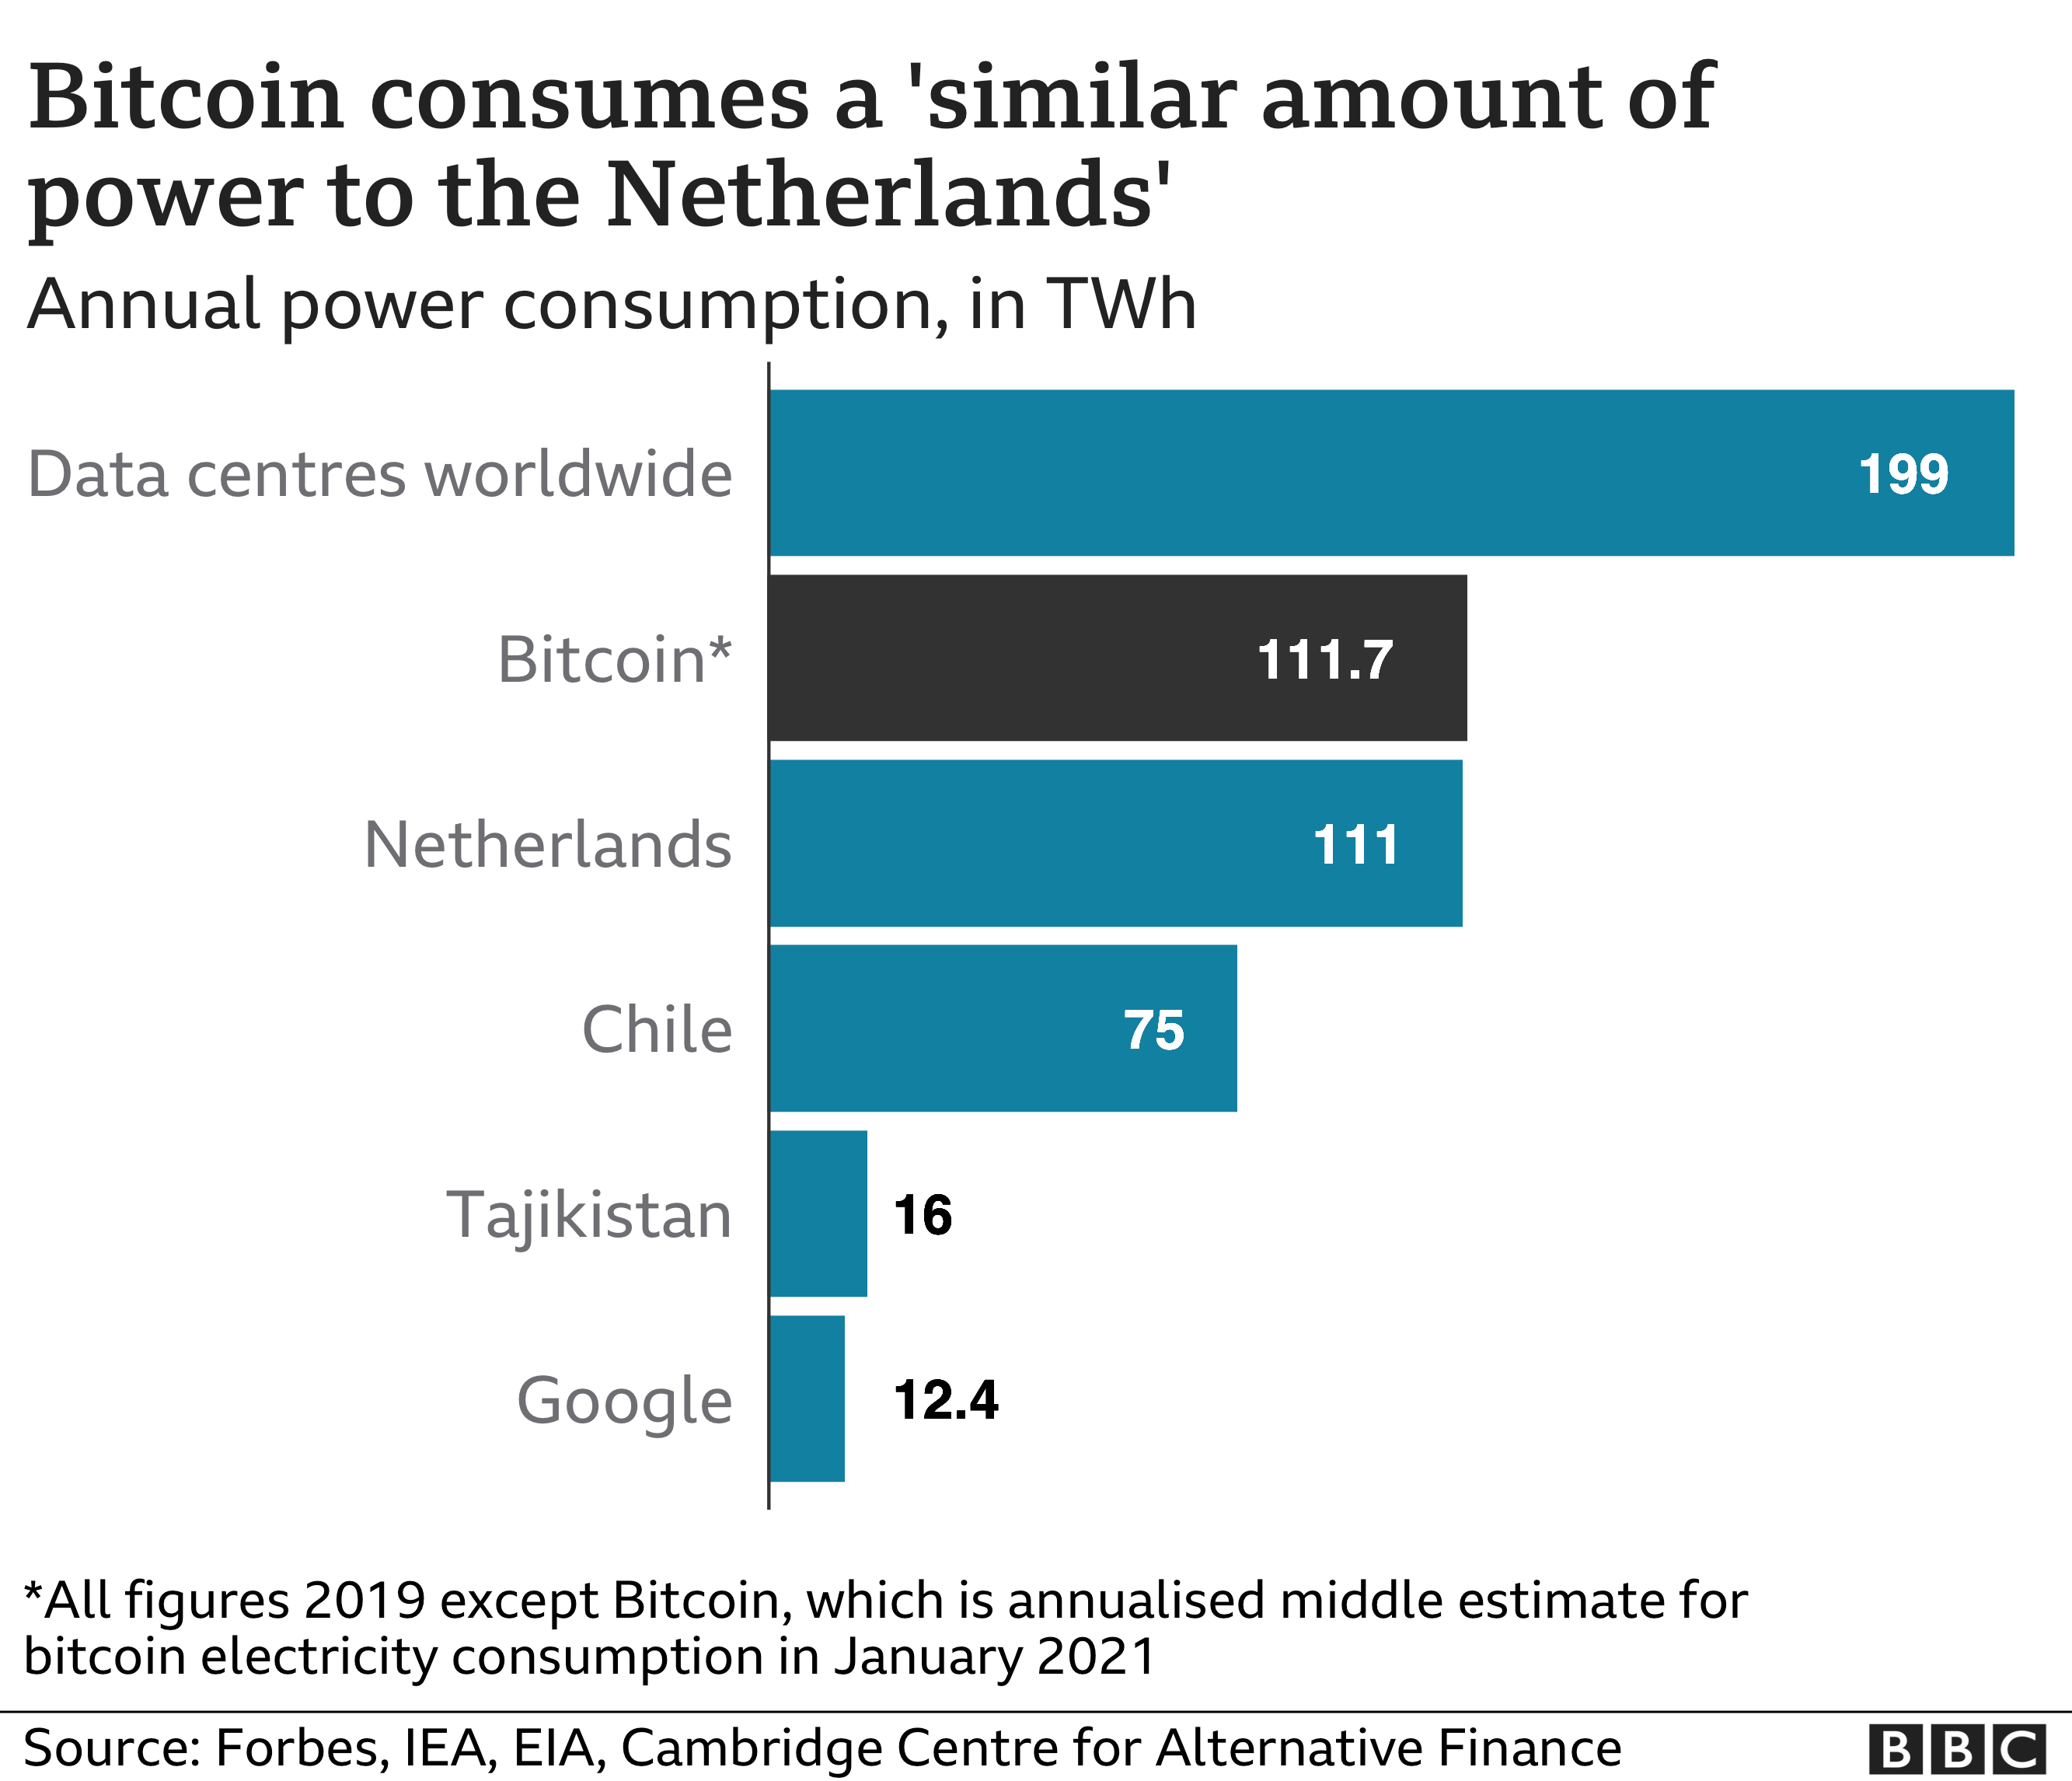 Bitcoin consumes a similar amount of power to the Netherlands